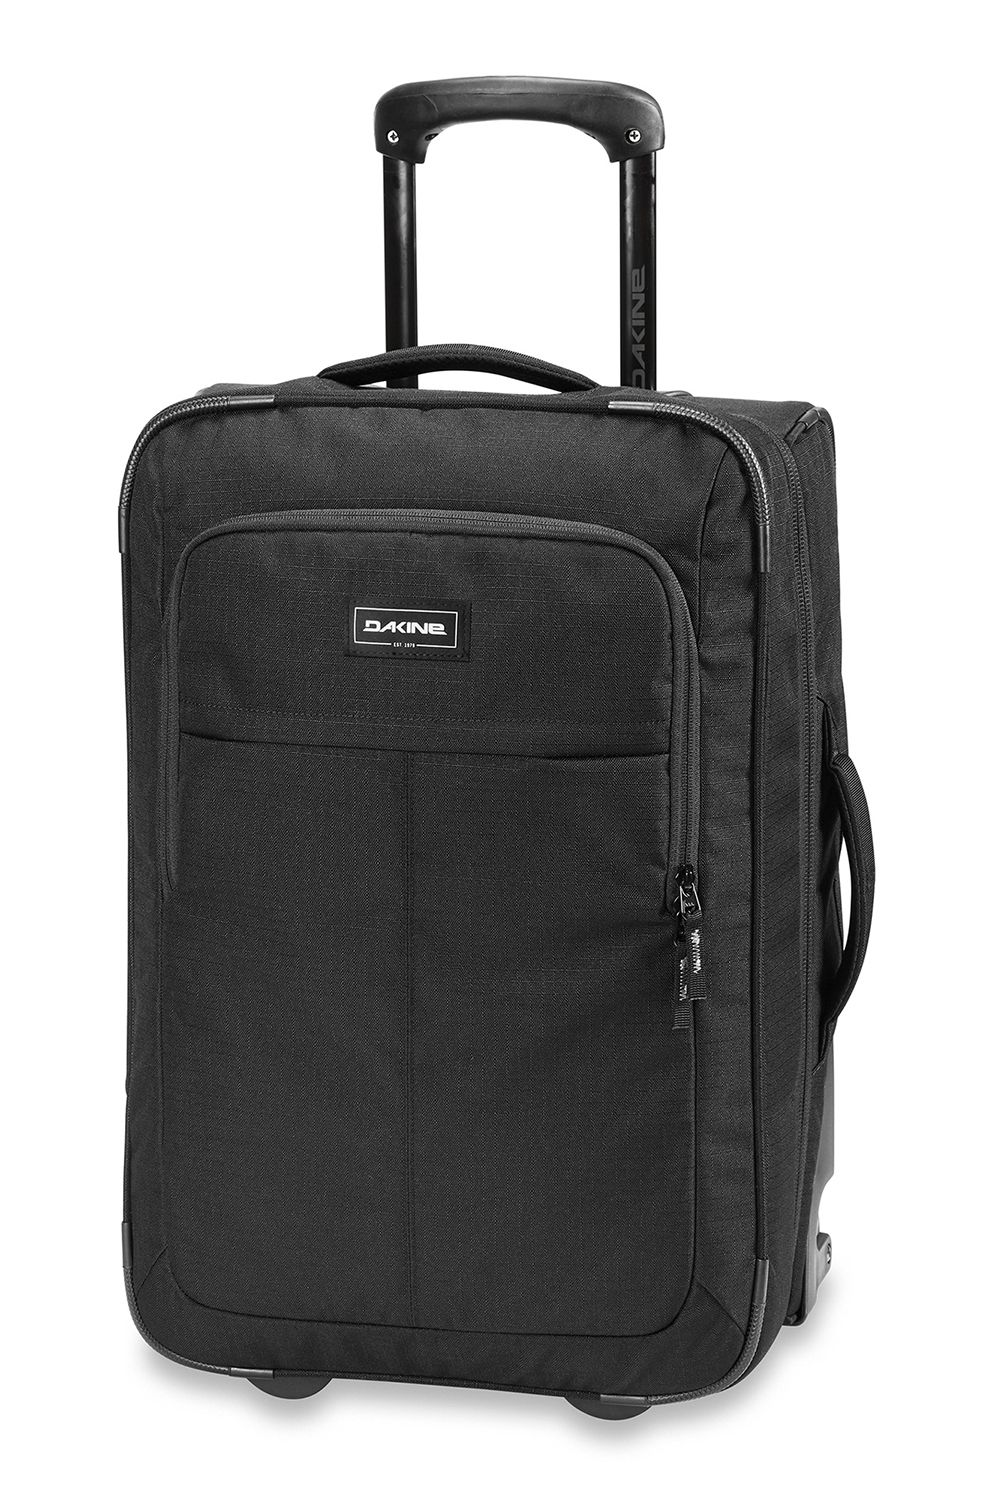 Mala Viagem Dakine CARRY ON ROLLER 42L Black